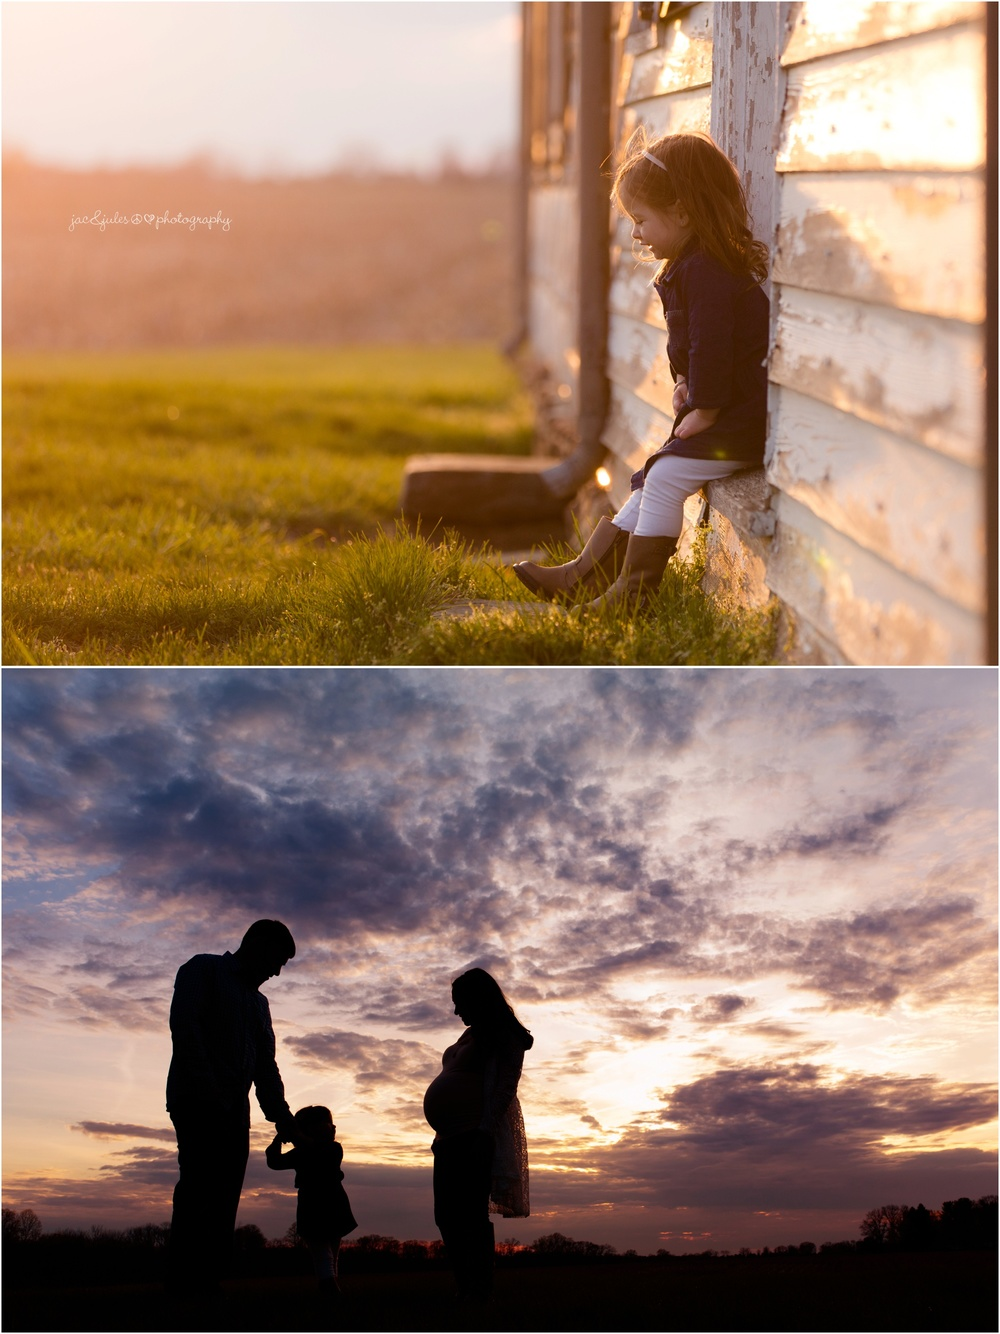 amazing light and sunset silhouette during family maternity photo shoot in freehold, nj.